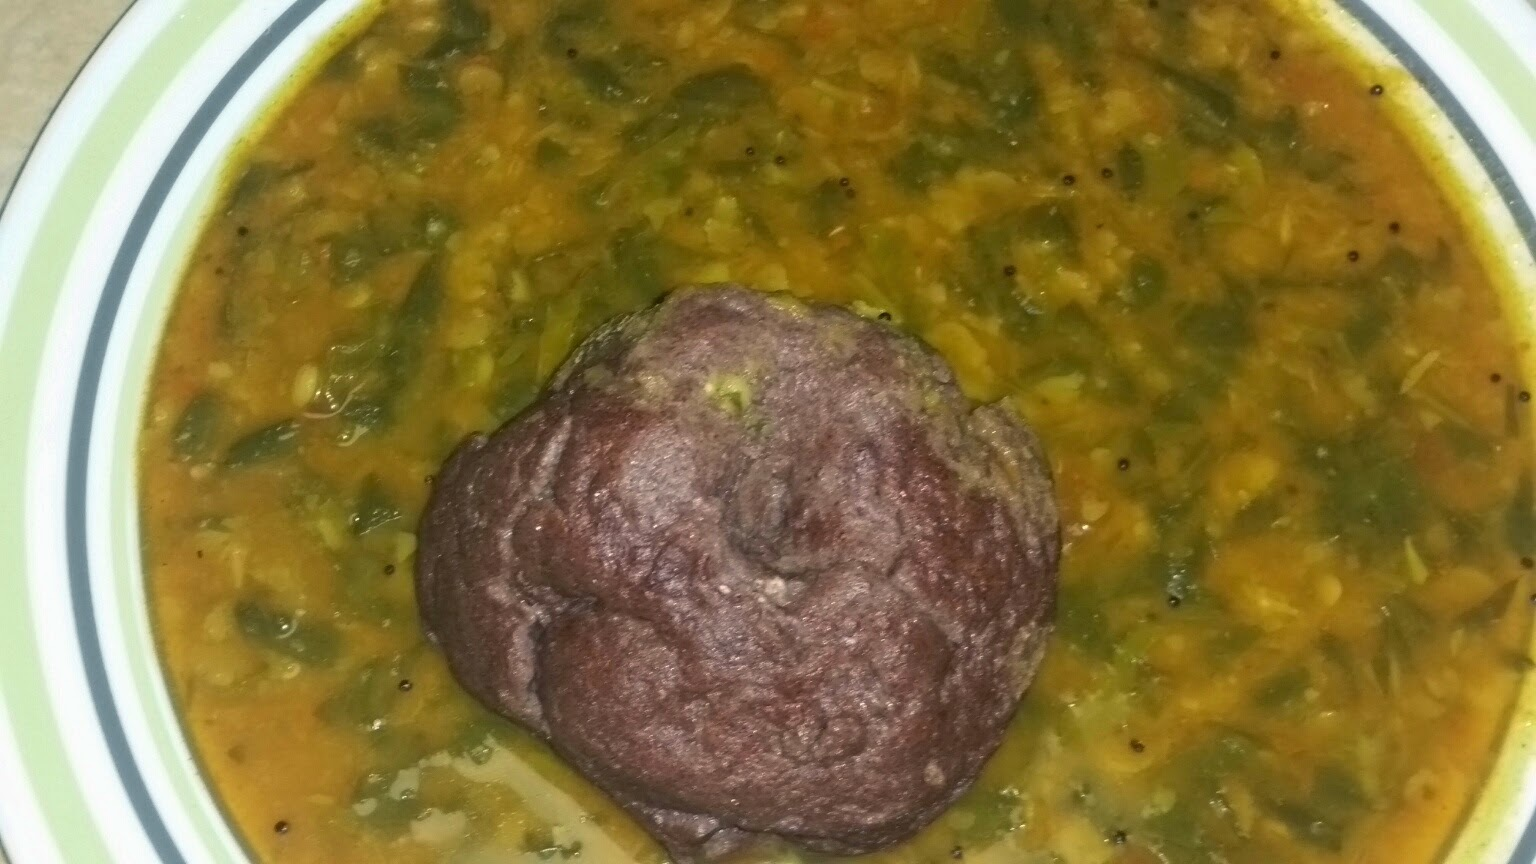 Karnataka Special-Ragi Mudde video